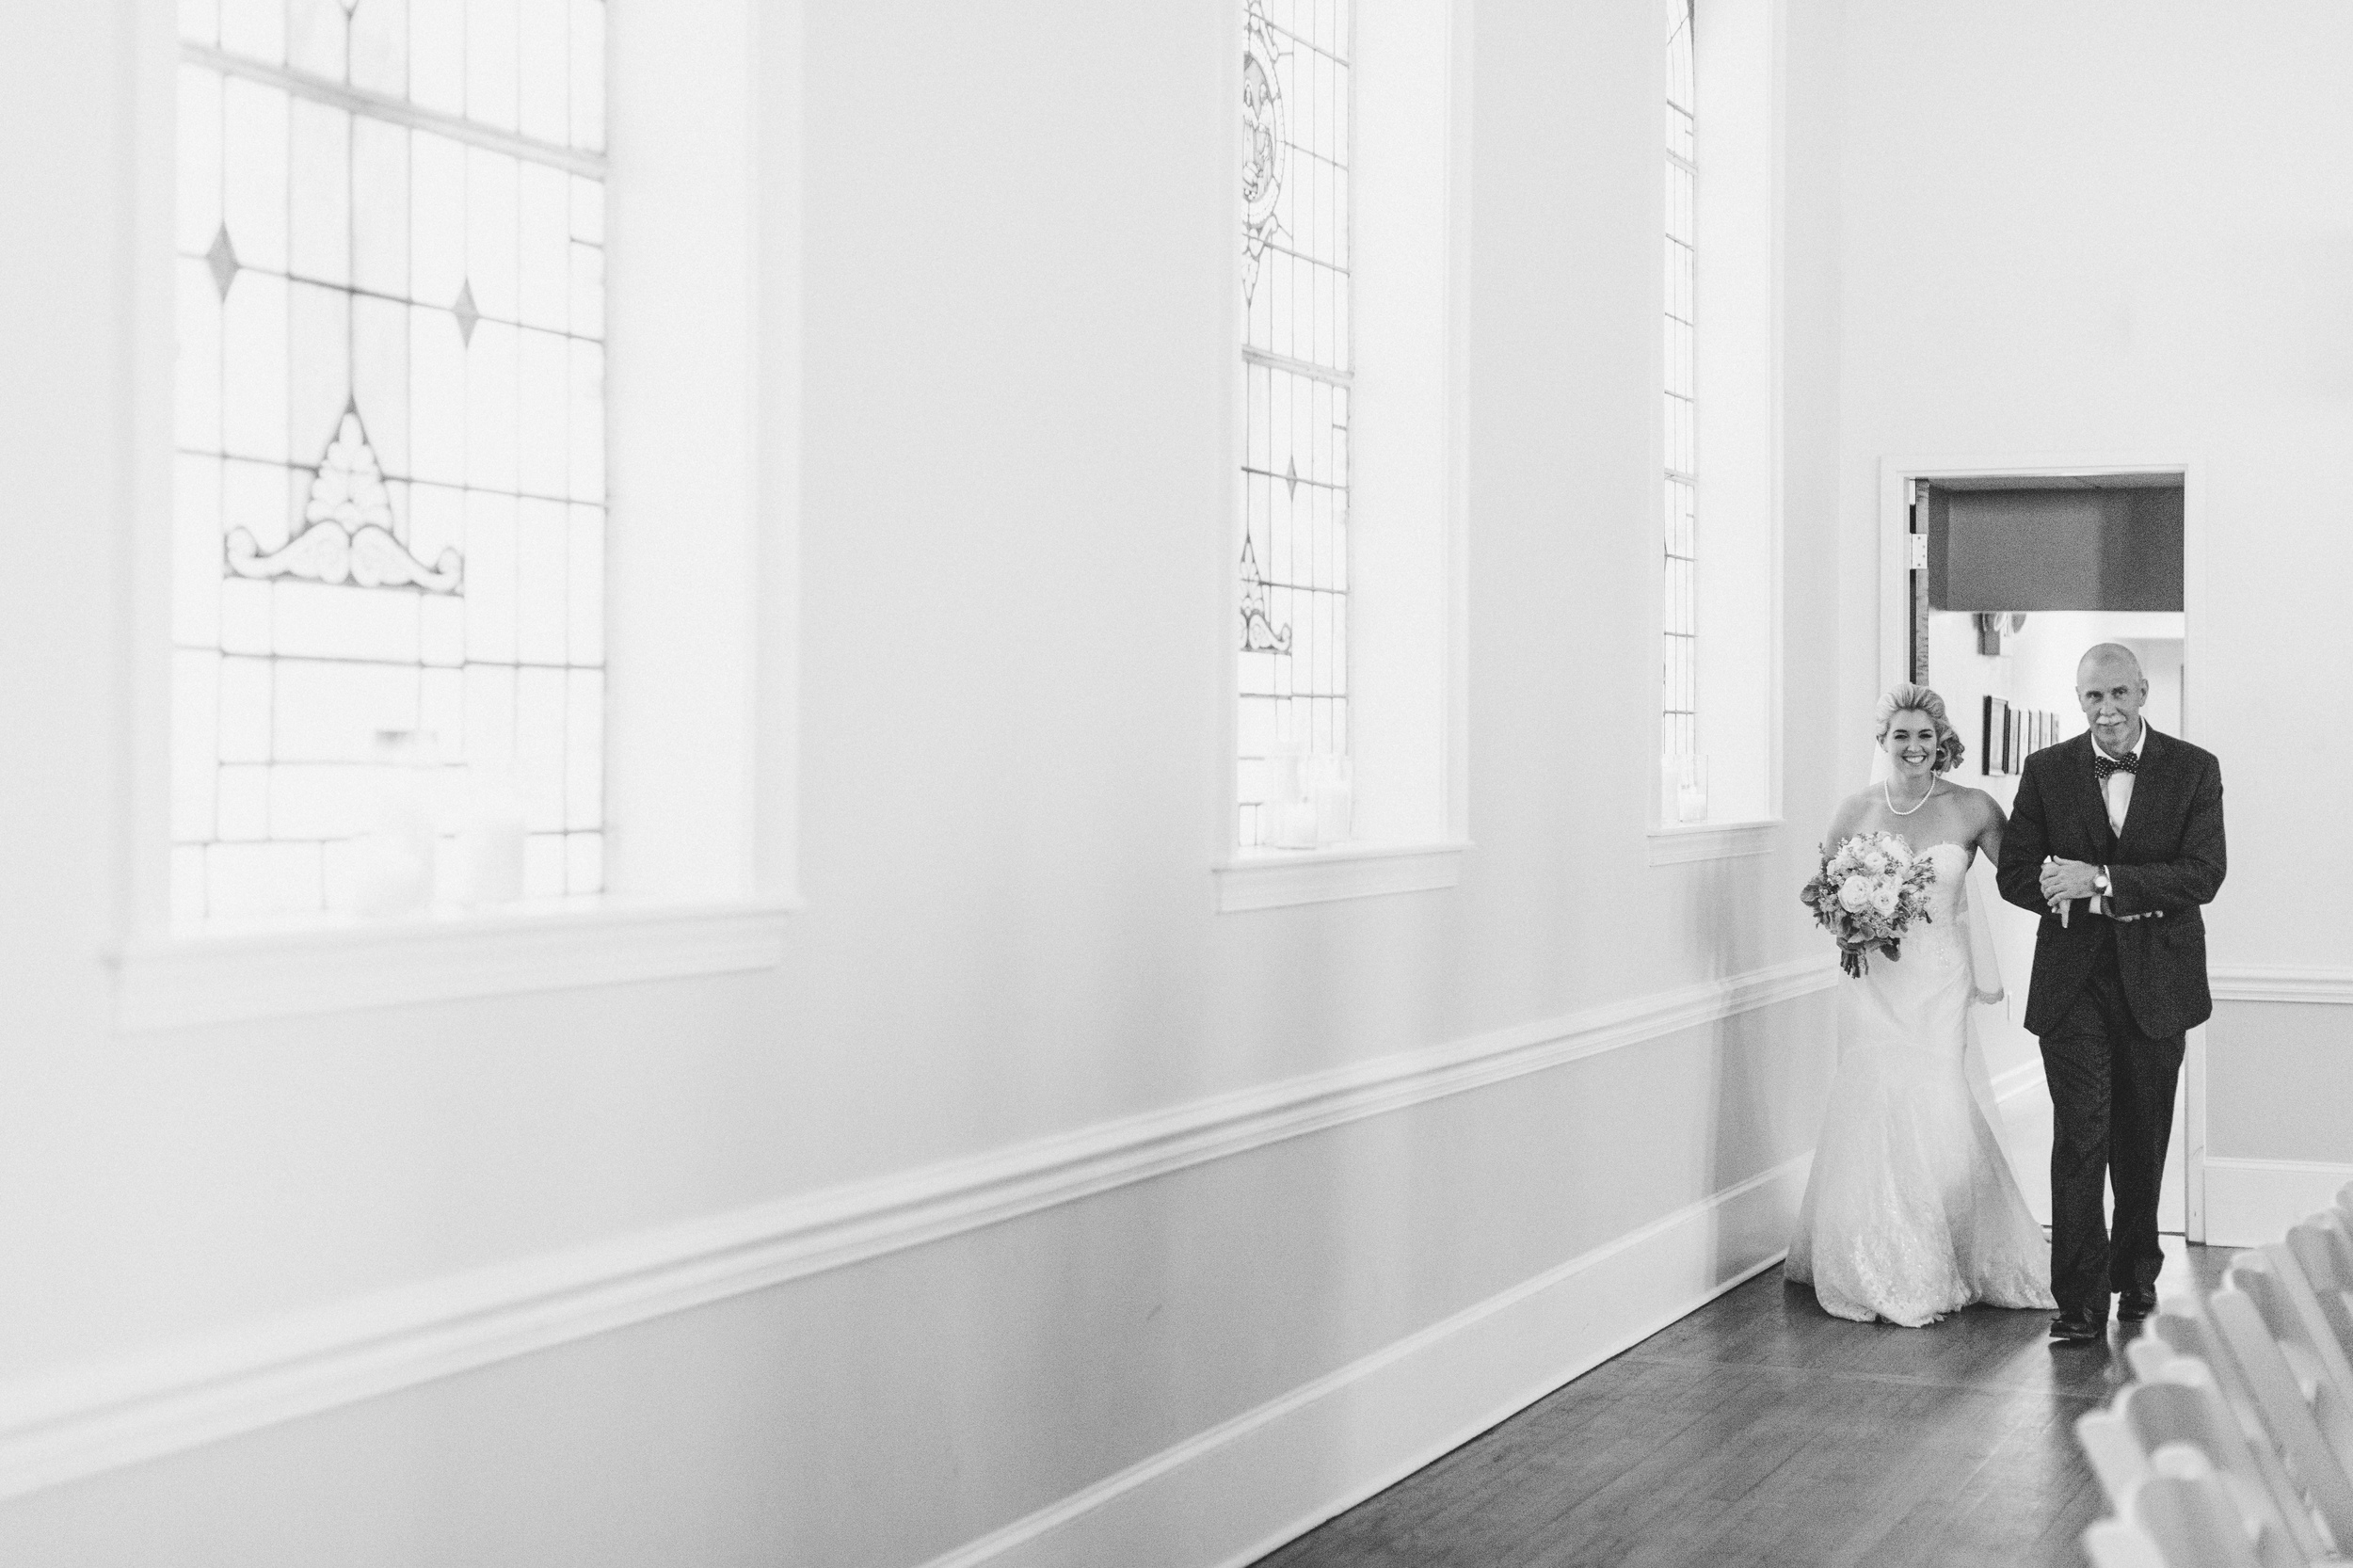 Hillary-and-Brian-izzy-hudgins-photography-anais-anette-tristan-lace-mermaid-wedding-dress-ivory-and-beau-bridal-boutique-savannah-bridal-boutique-savannah-wedding-dresses-savannah-bridal-gowns-savannah-wedding-dresses-first-babtist-savannah-21.jpg